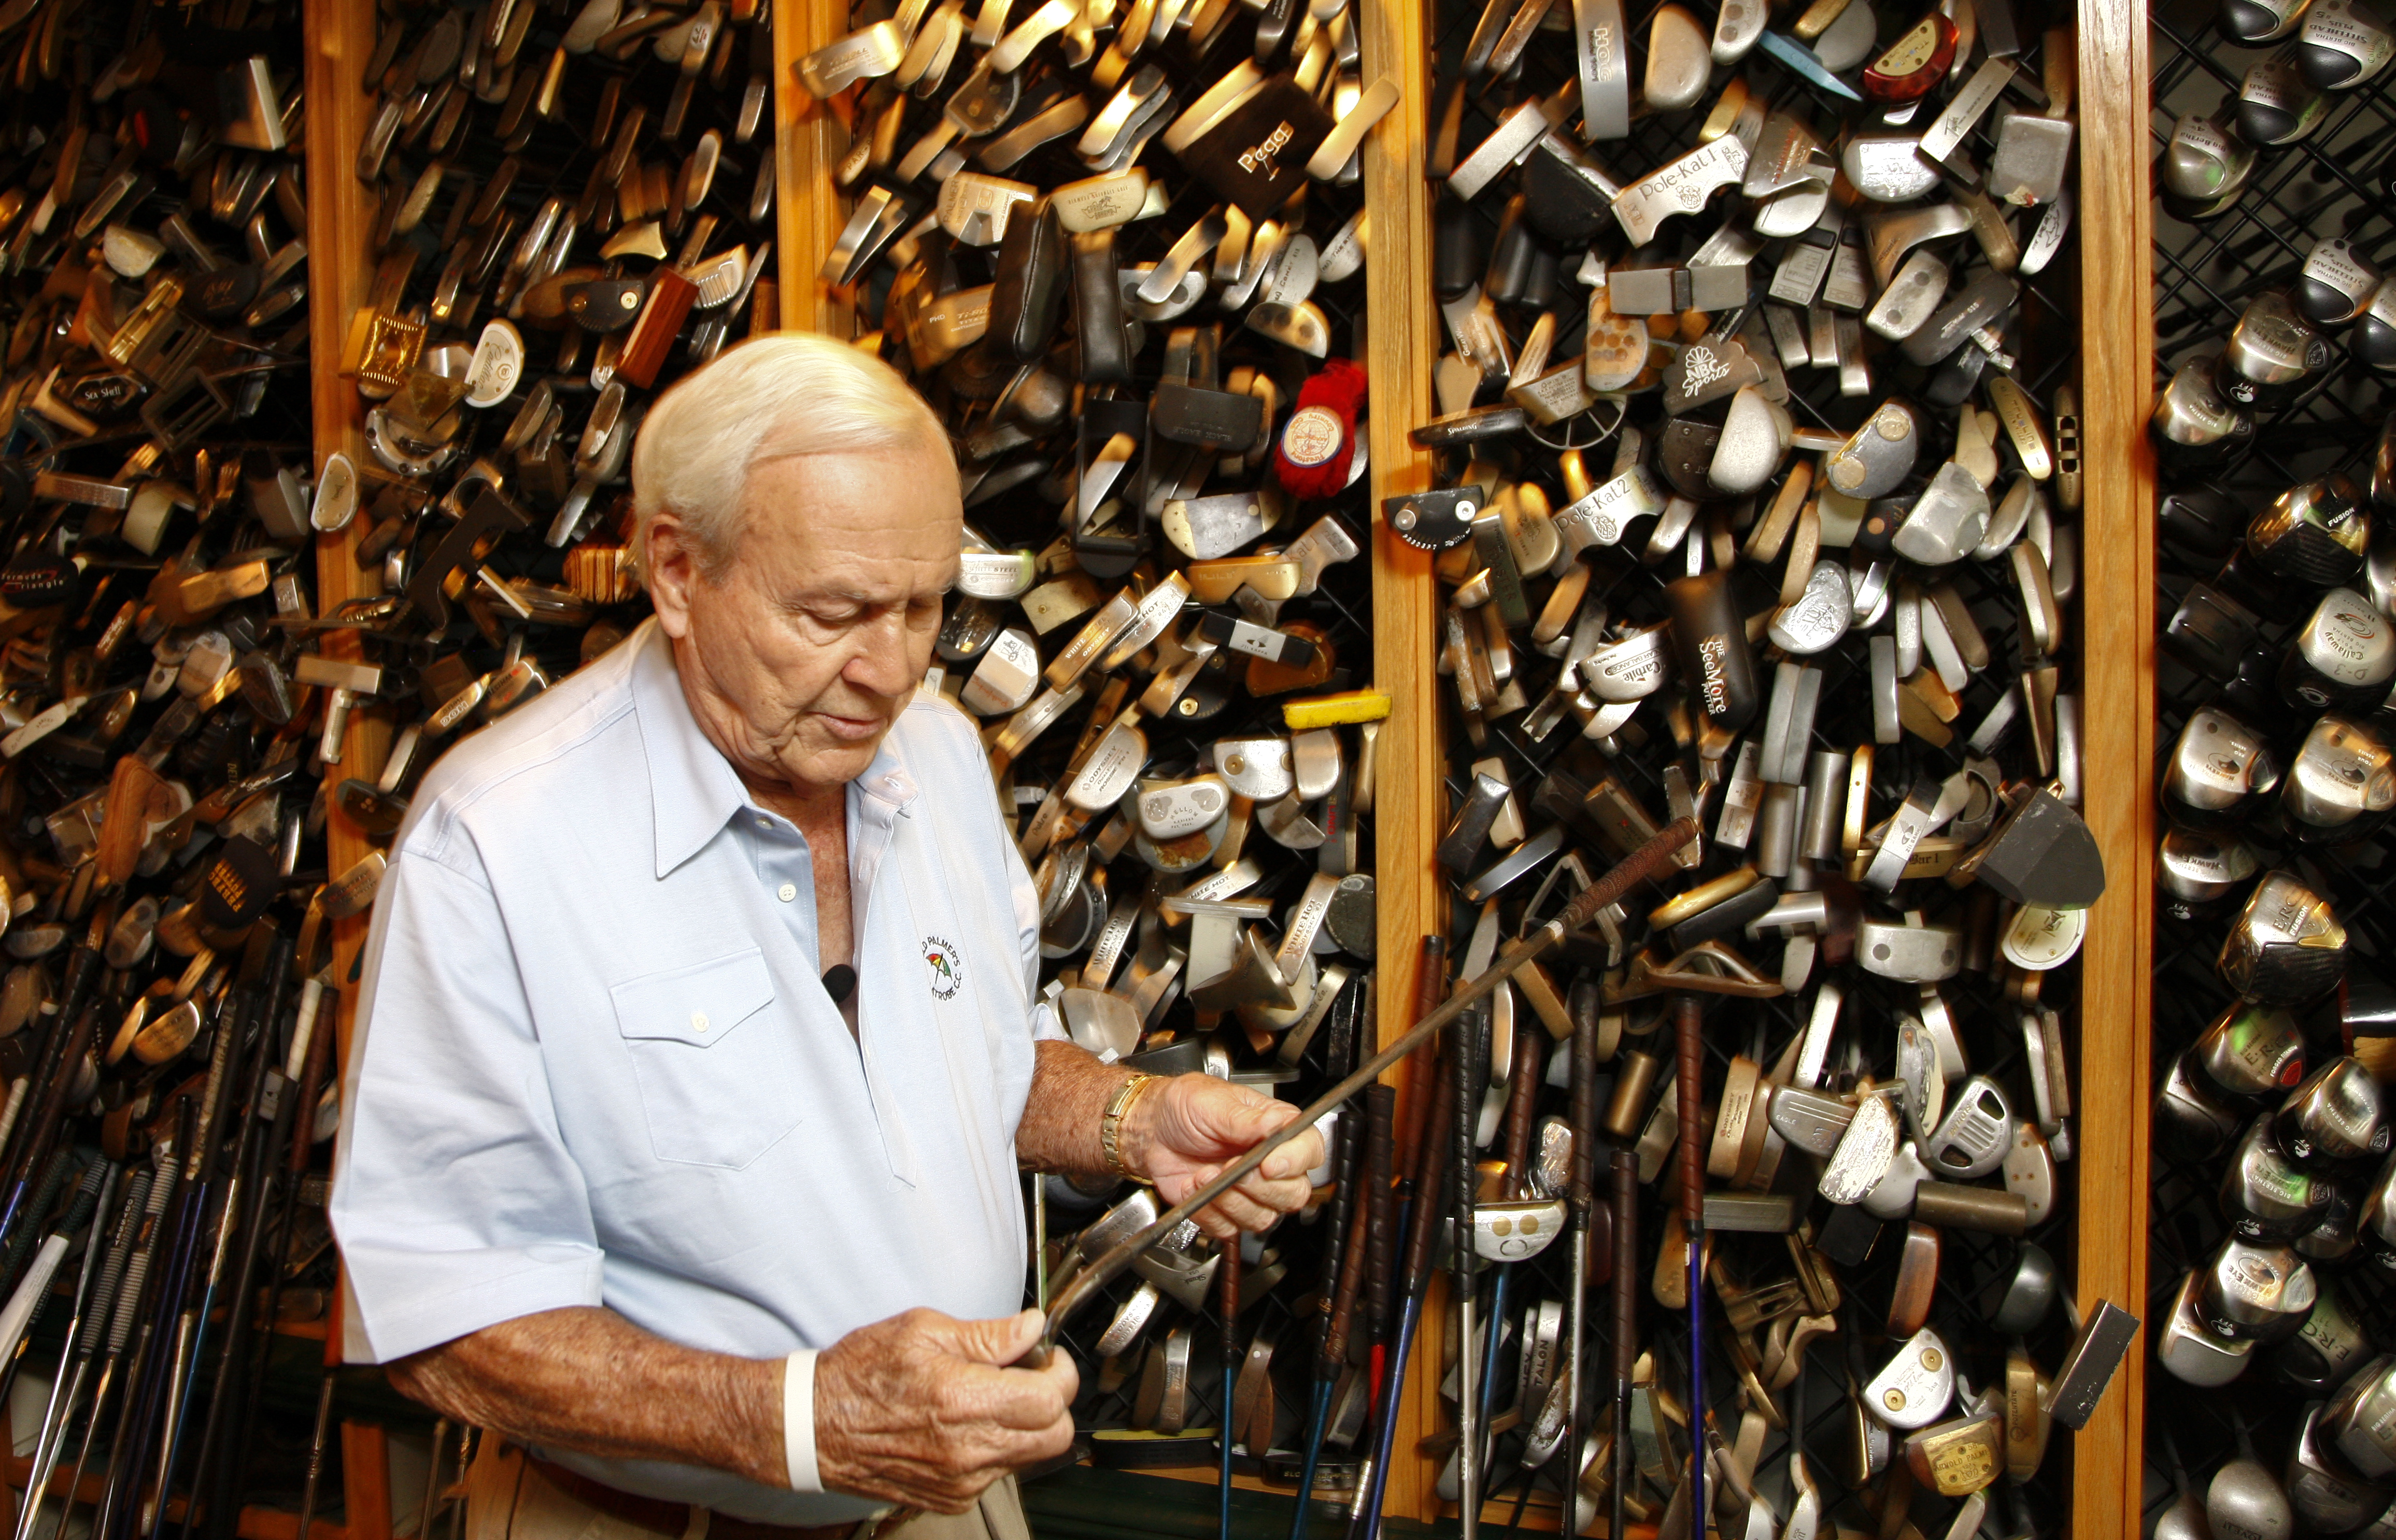 Arnold Palmer holds one of the thousands of clubs he collected over the years during a previous visit from Sports Illustrated.